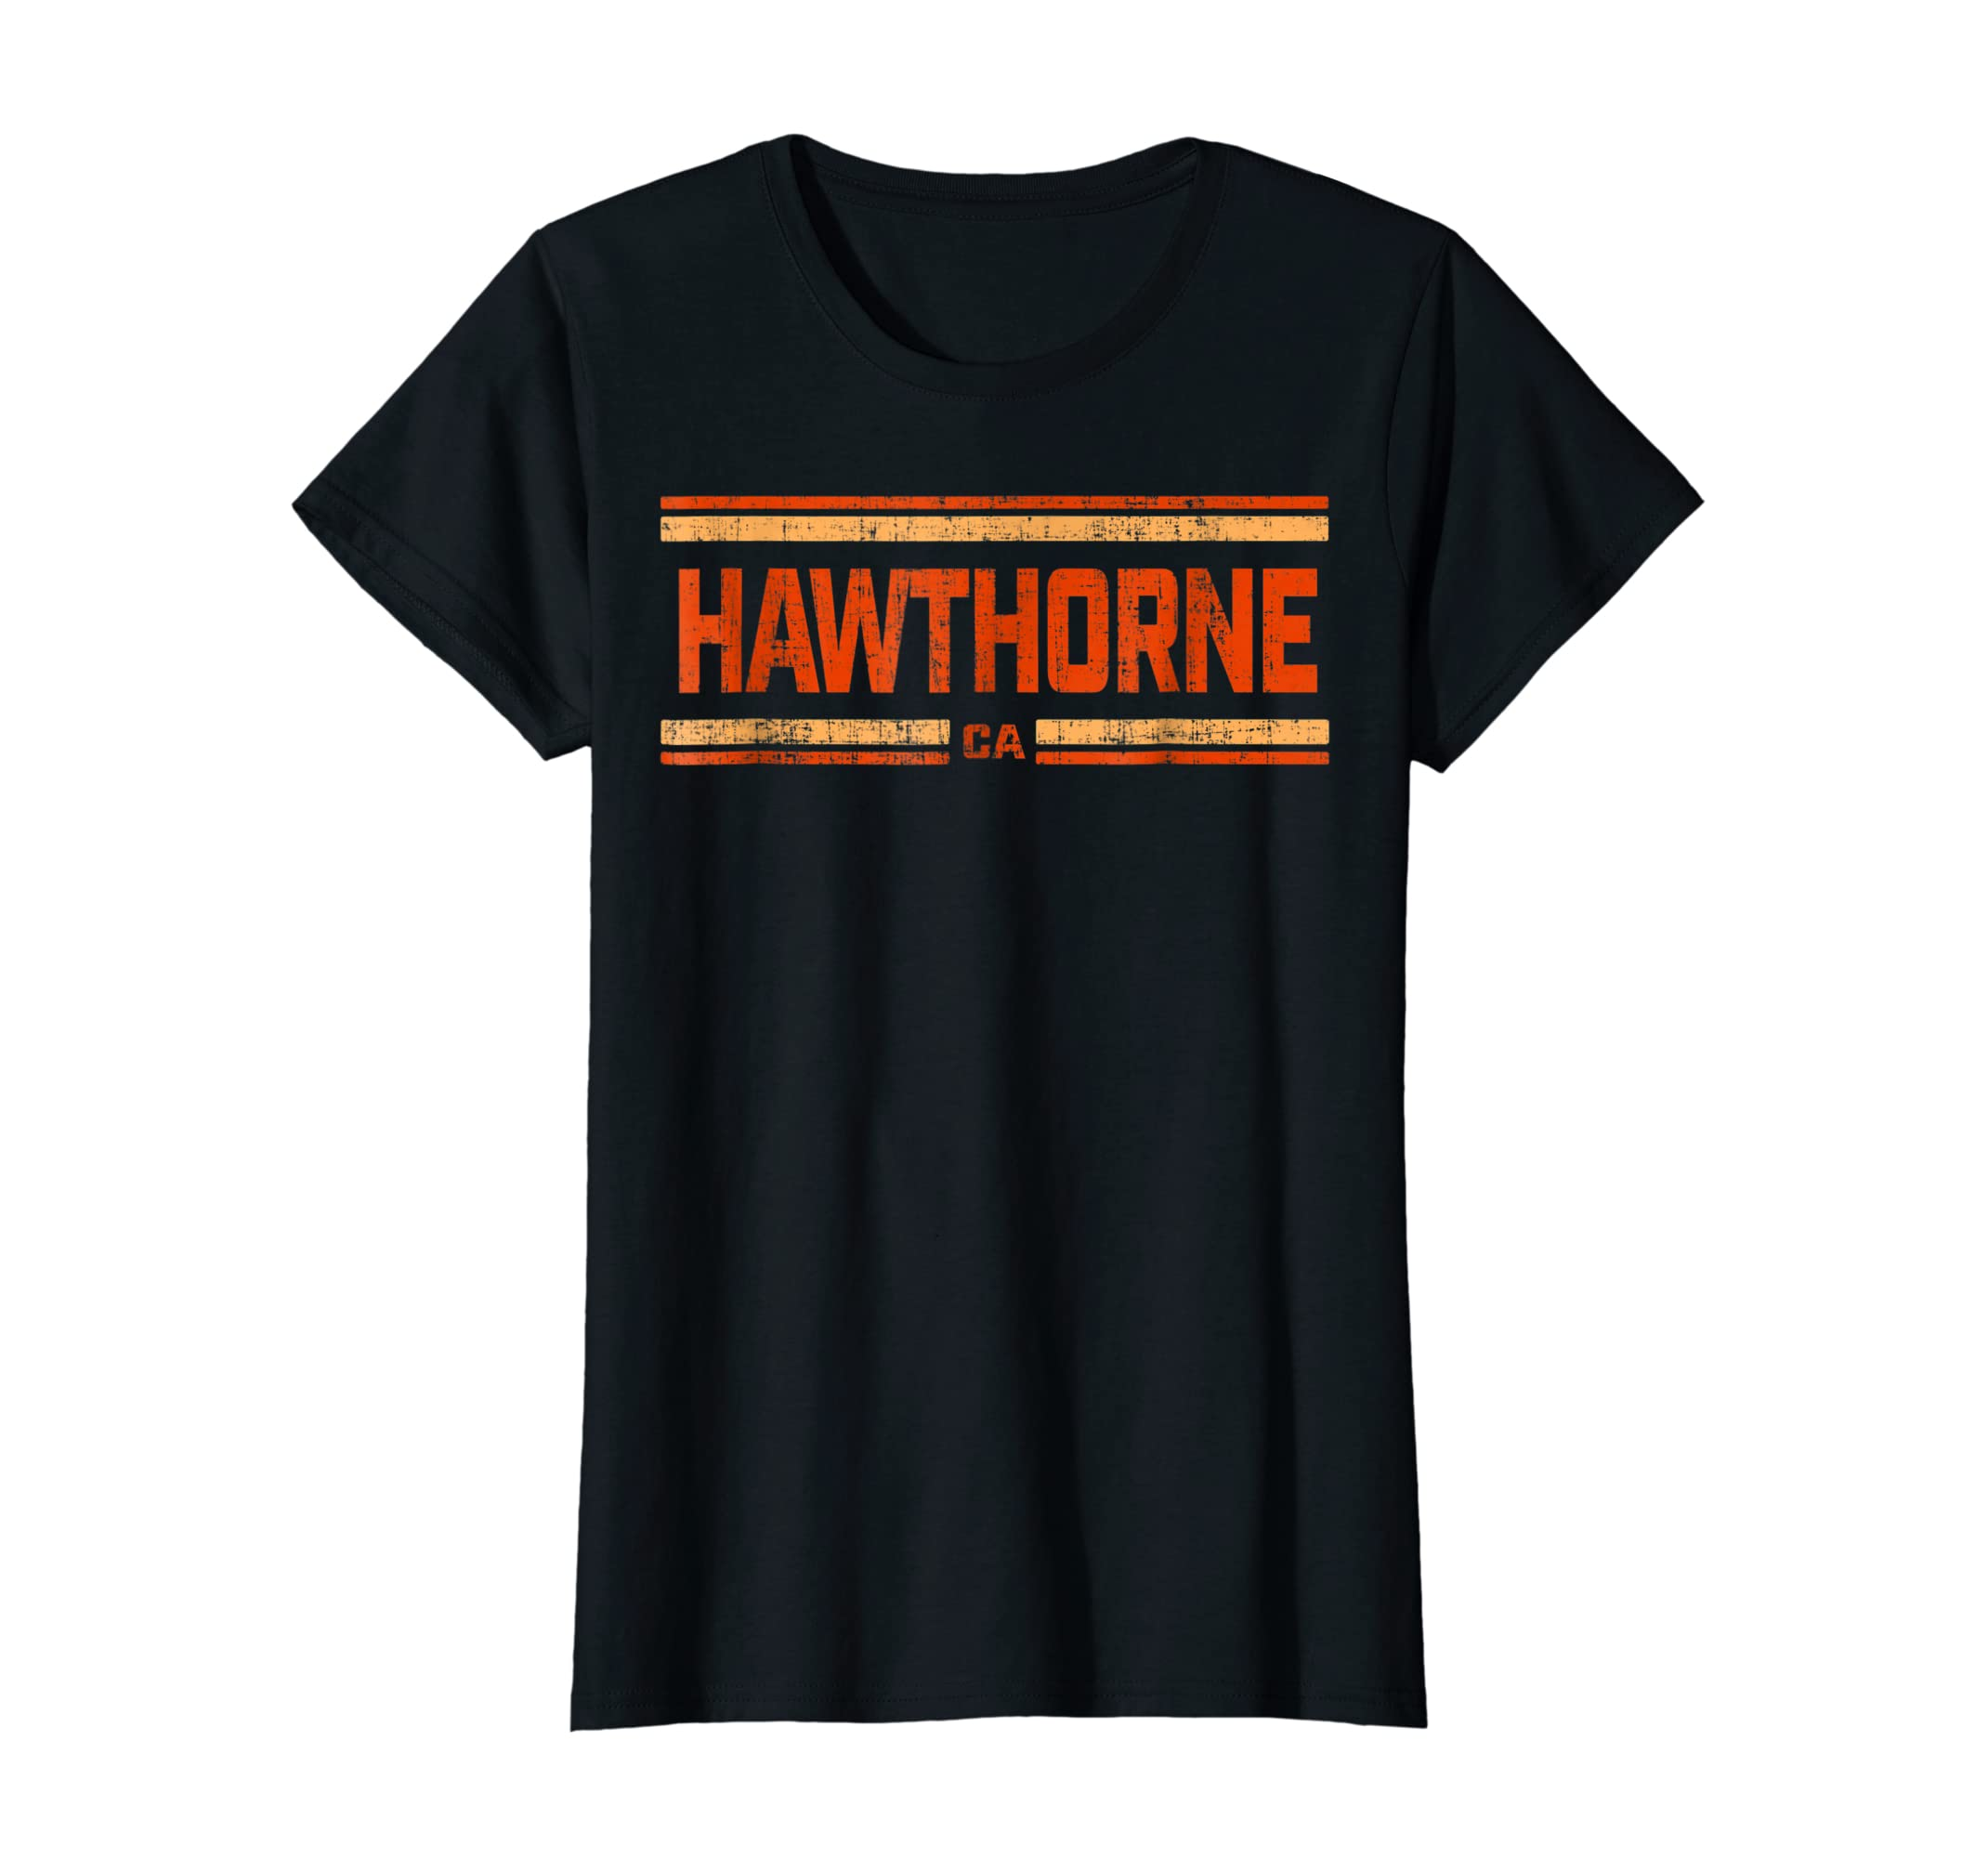 Retro Vintage Hawthorne CA Distressed T-Shirt-Women's T-Shirt-Black